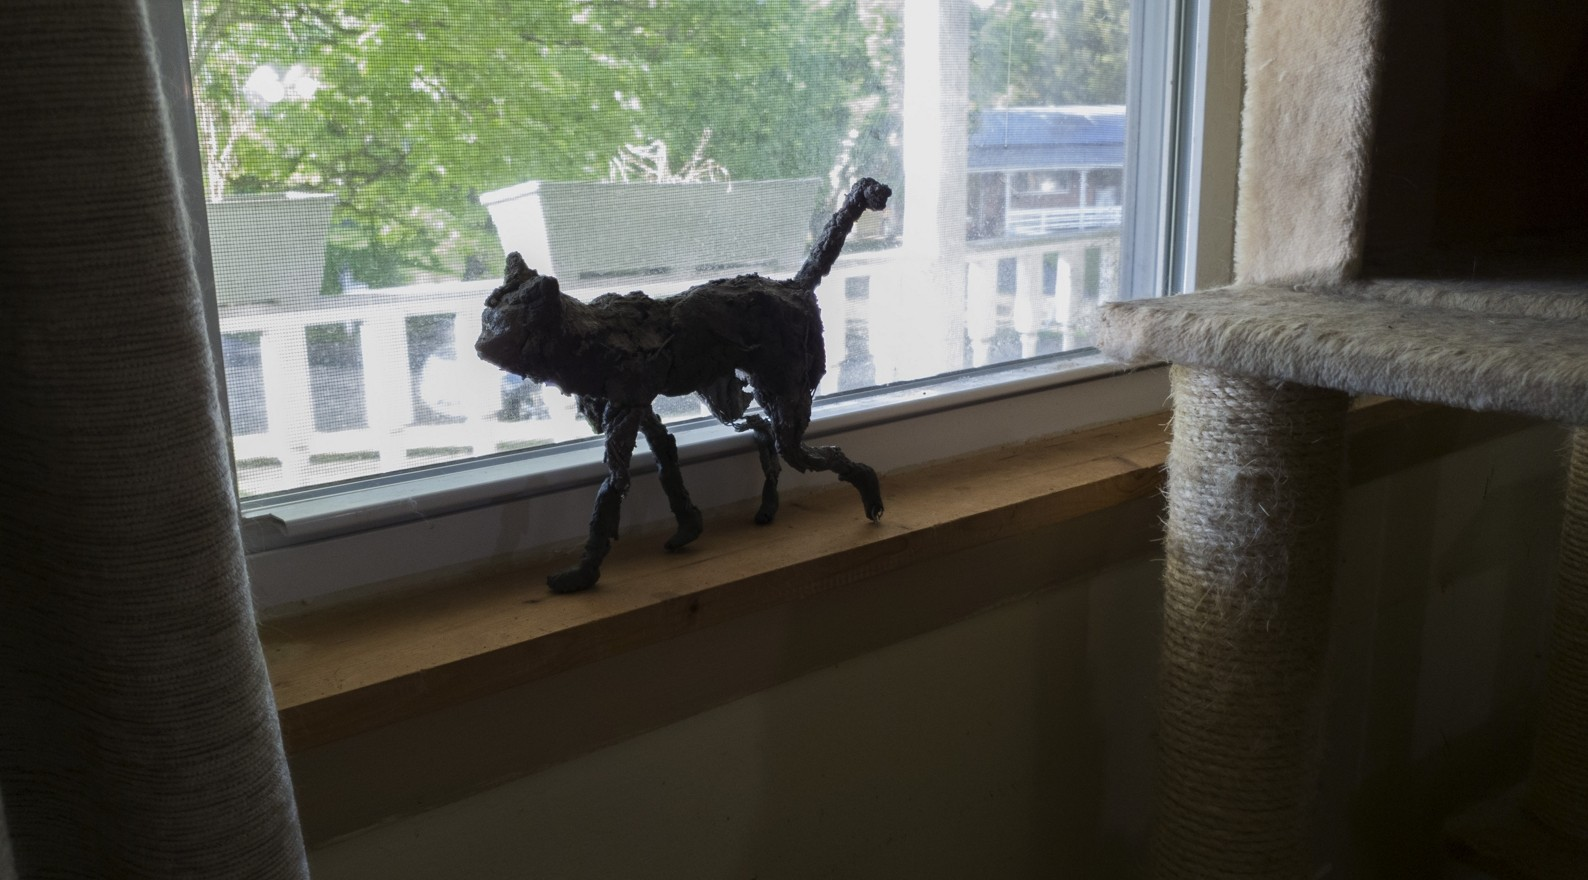 Photos of a roughly sculpted cat walking across a windowsill and the floor.